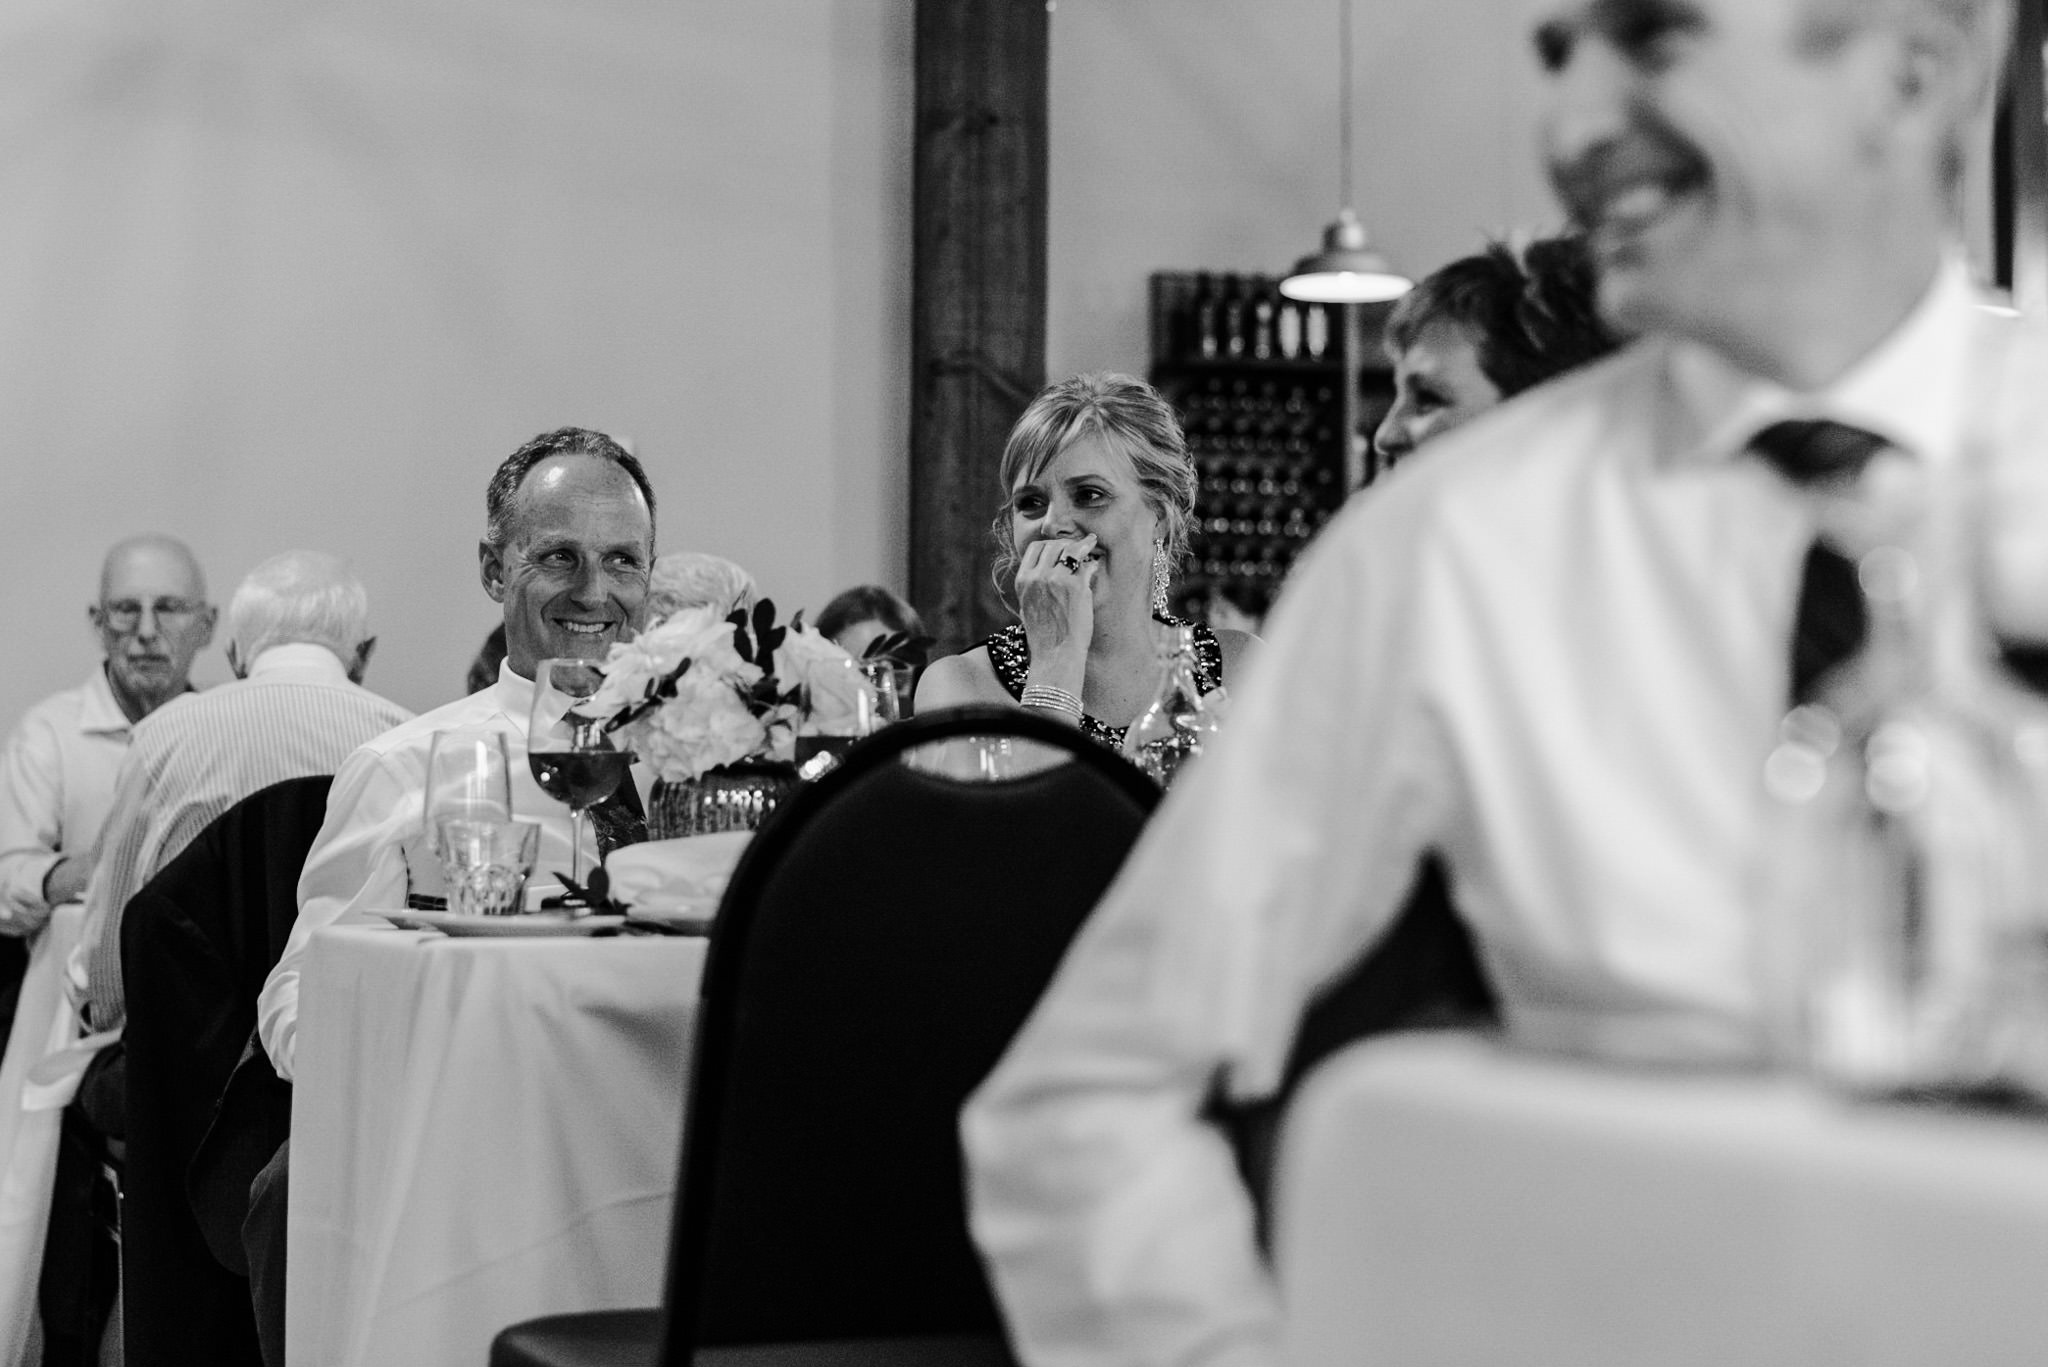 144-wedding-party-head-table-dominion-telegraph-arlington-hotel-candids.jpg